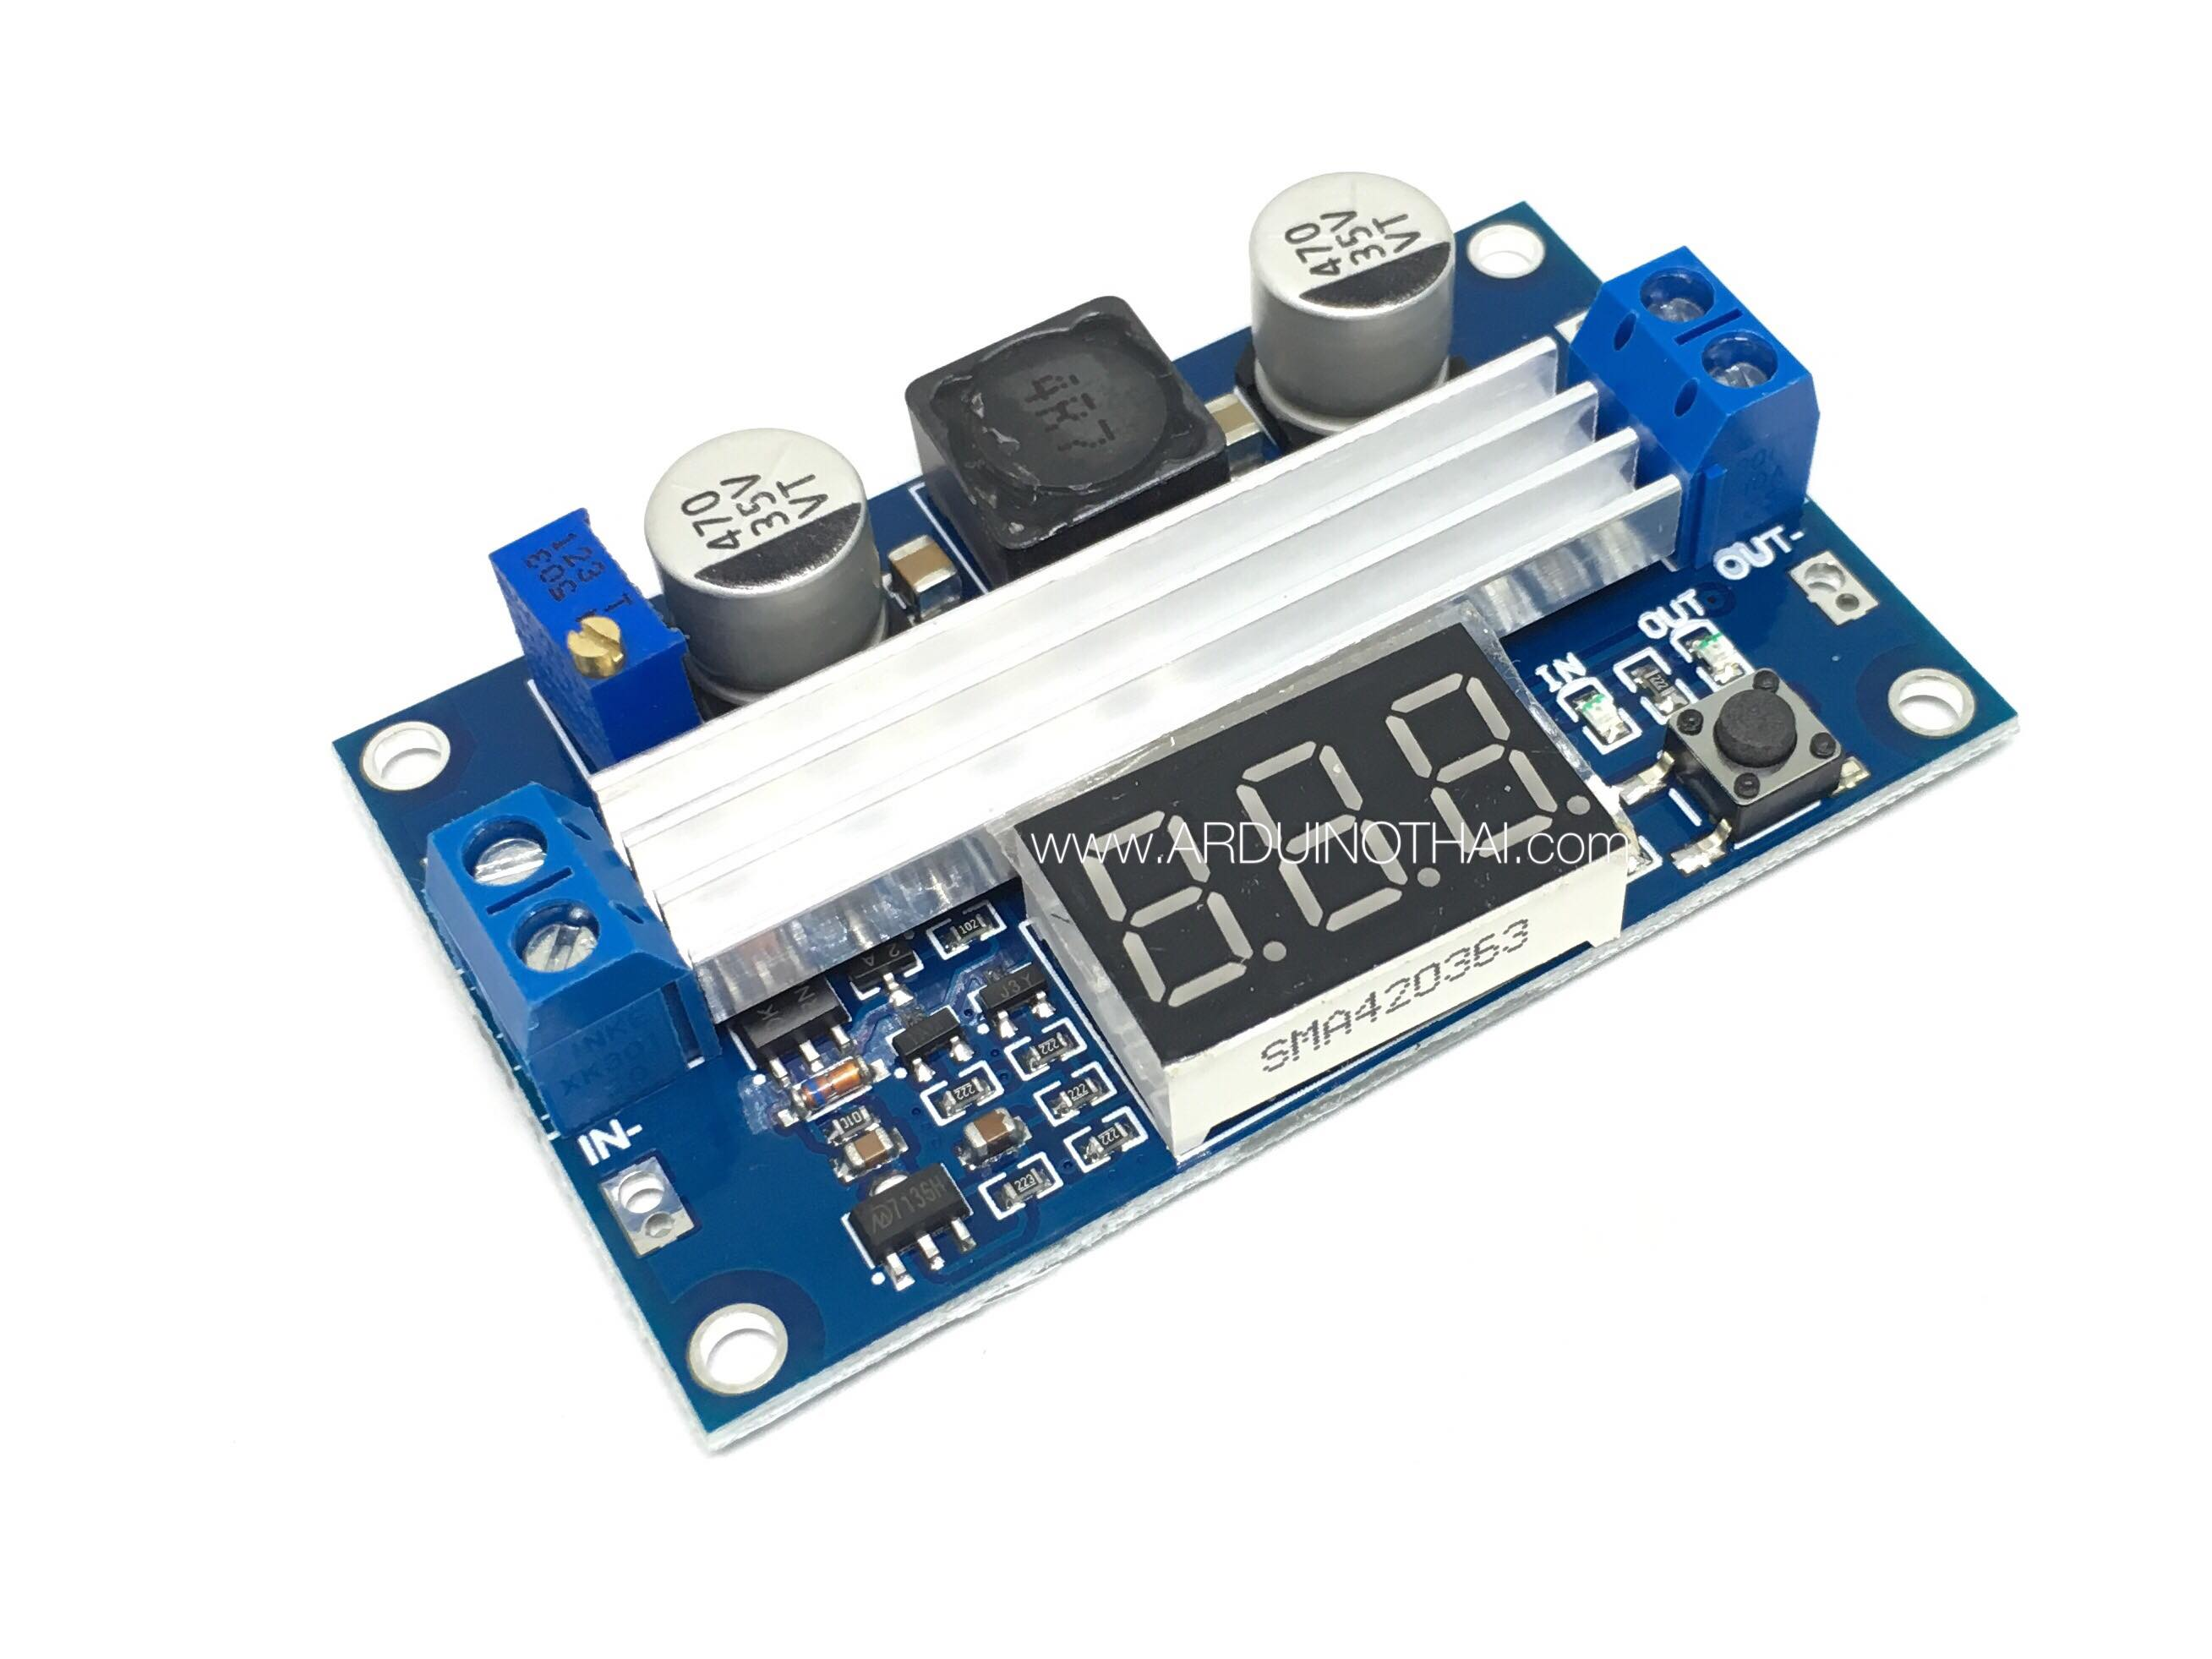 DC-DC Step up with Digital voltmeter 3.5-35V 100W